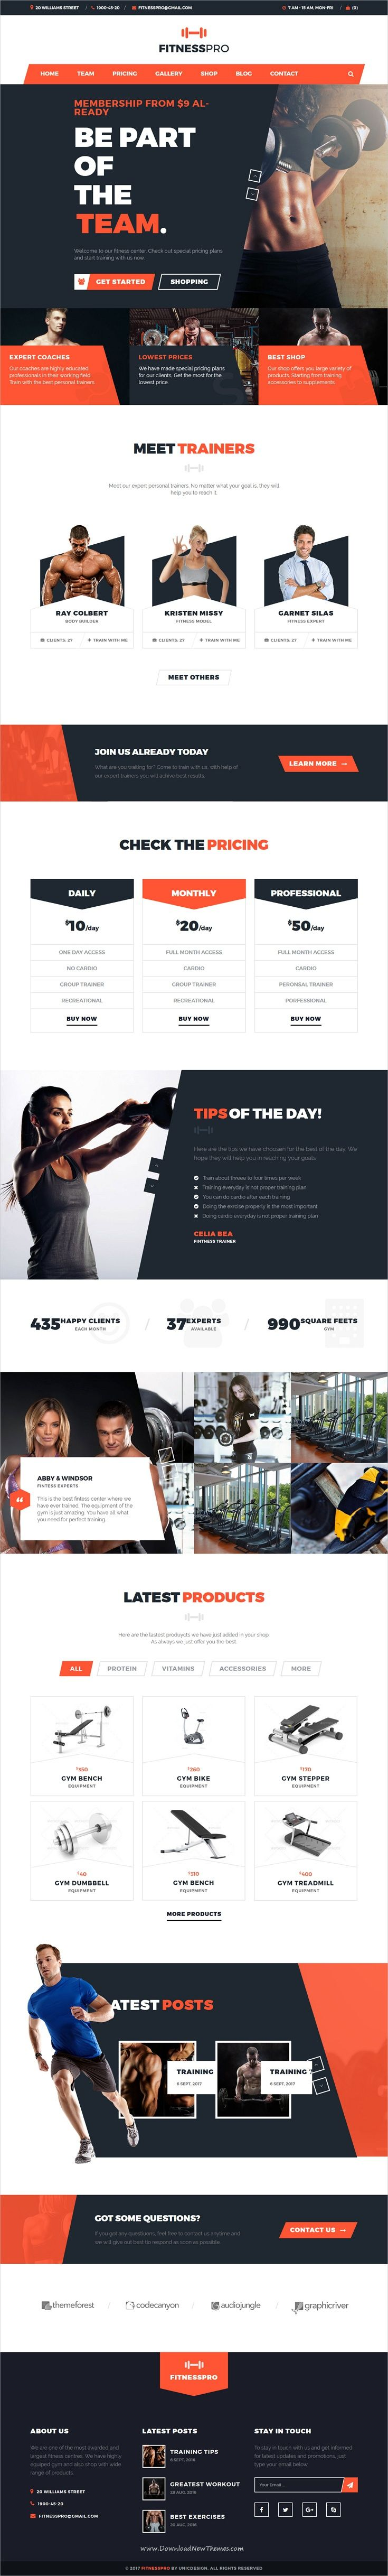 FitnessPro is a wonderful responsive #HTML #bootstrap template for #gym and #fitness centers website download now➩ https://themeforest.net/item/fitnesspro-html-template/19613210?ref=Datasata